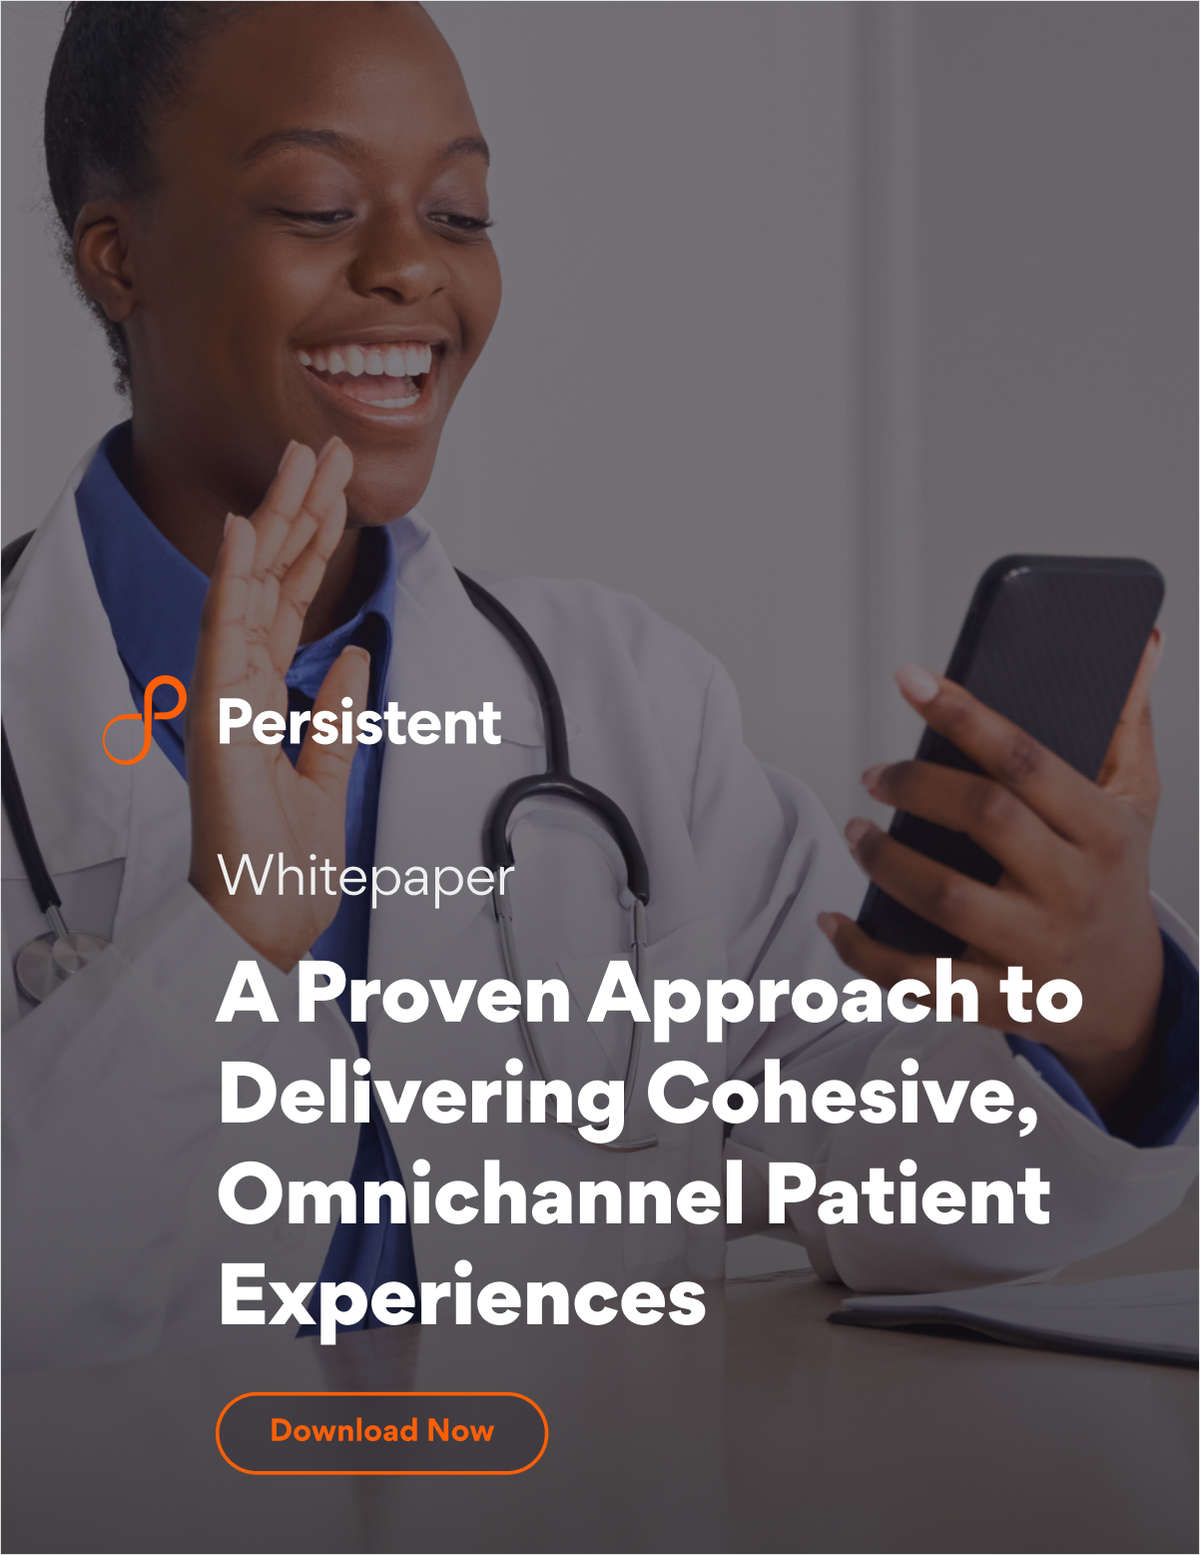 A Proven Approach to Delivering Cohesive, Omnichannel Patient Experiences